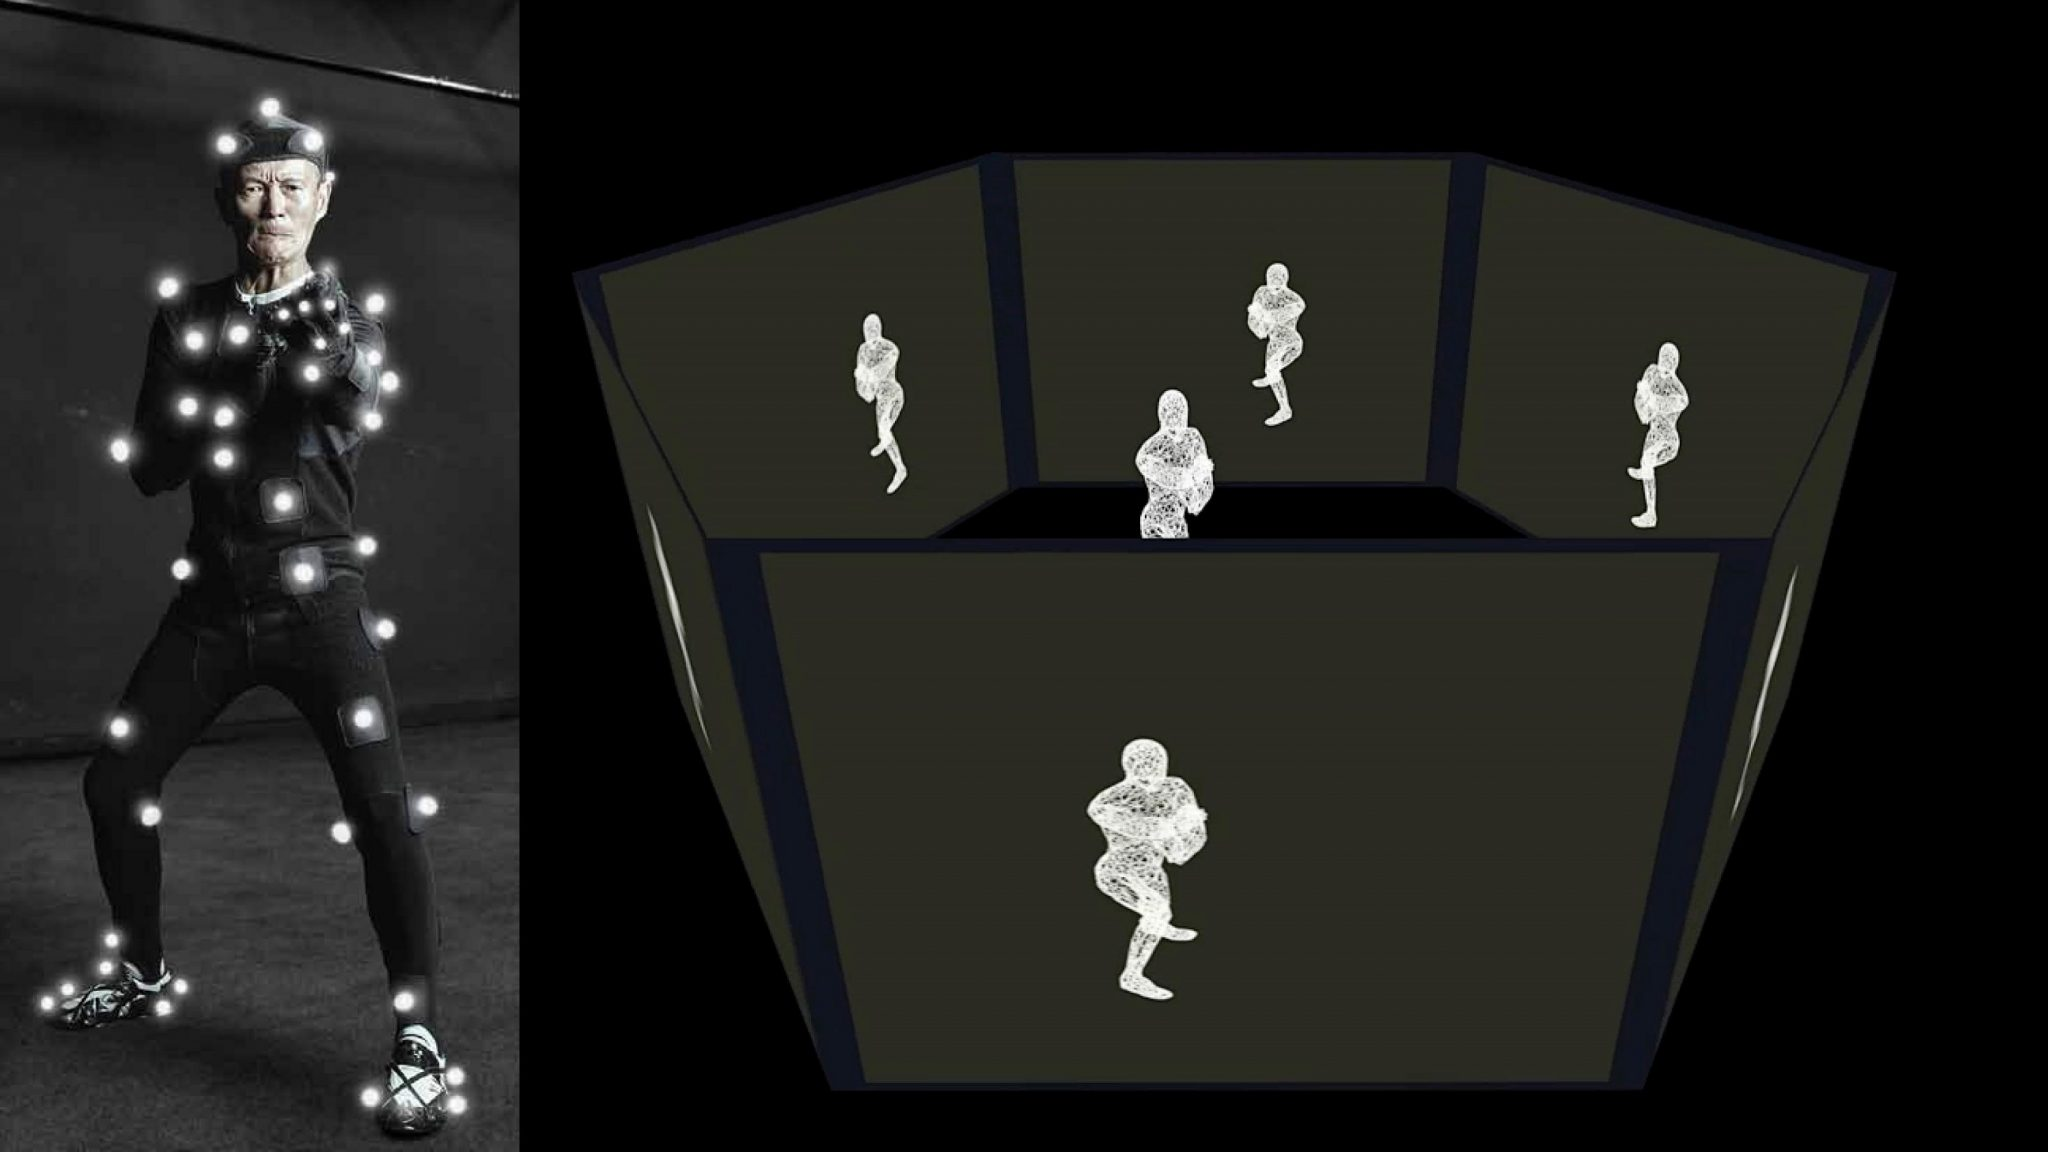 Motion capture and display of kung fu